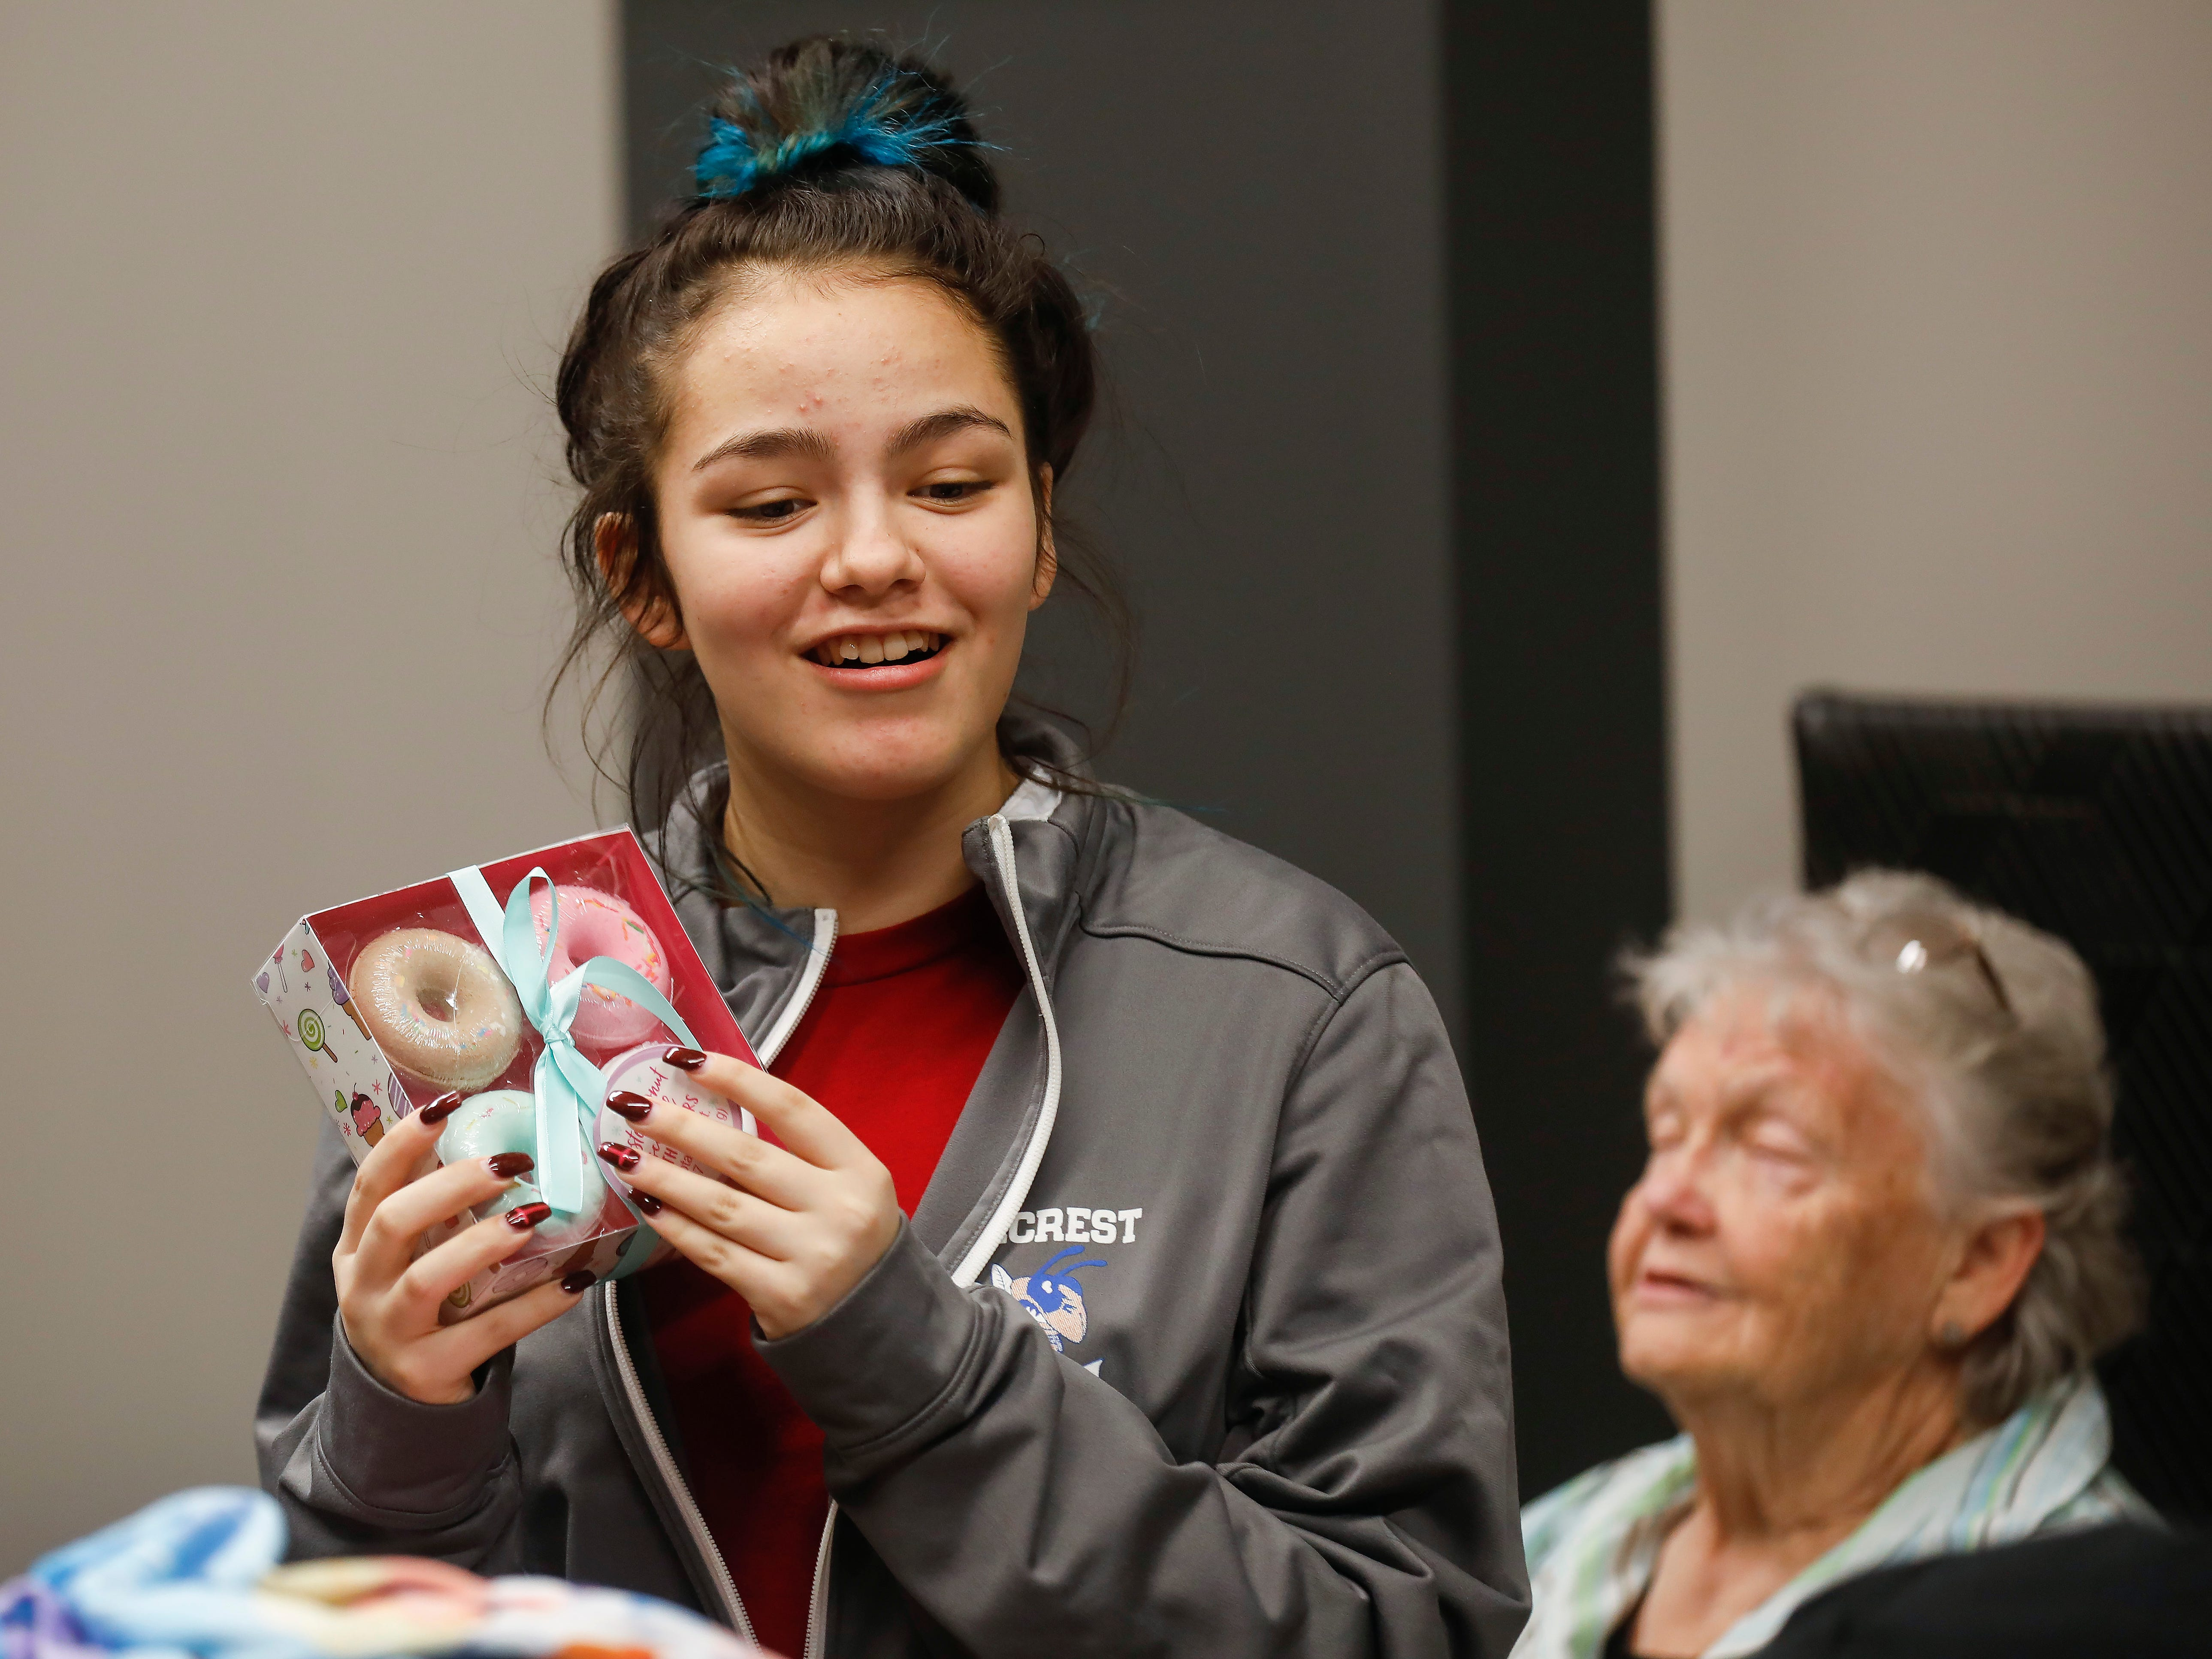 Callie Sahagun, center, shows off one of the gifts that were given to her and her sisters by employees of J.D. Byrider on Wednesday, Dec. 19, 2018. The Sahaguns' grandmother, Barbara Foster, was killed during a road rage incident on Nov. 20.